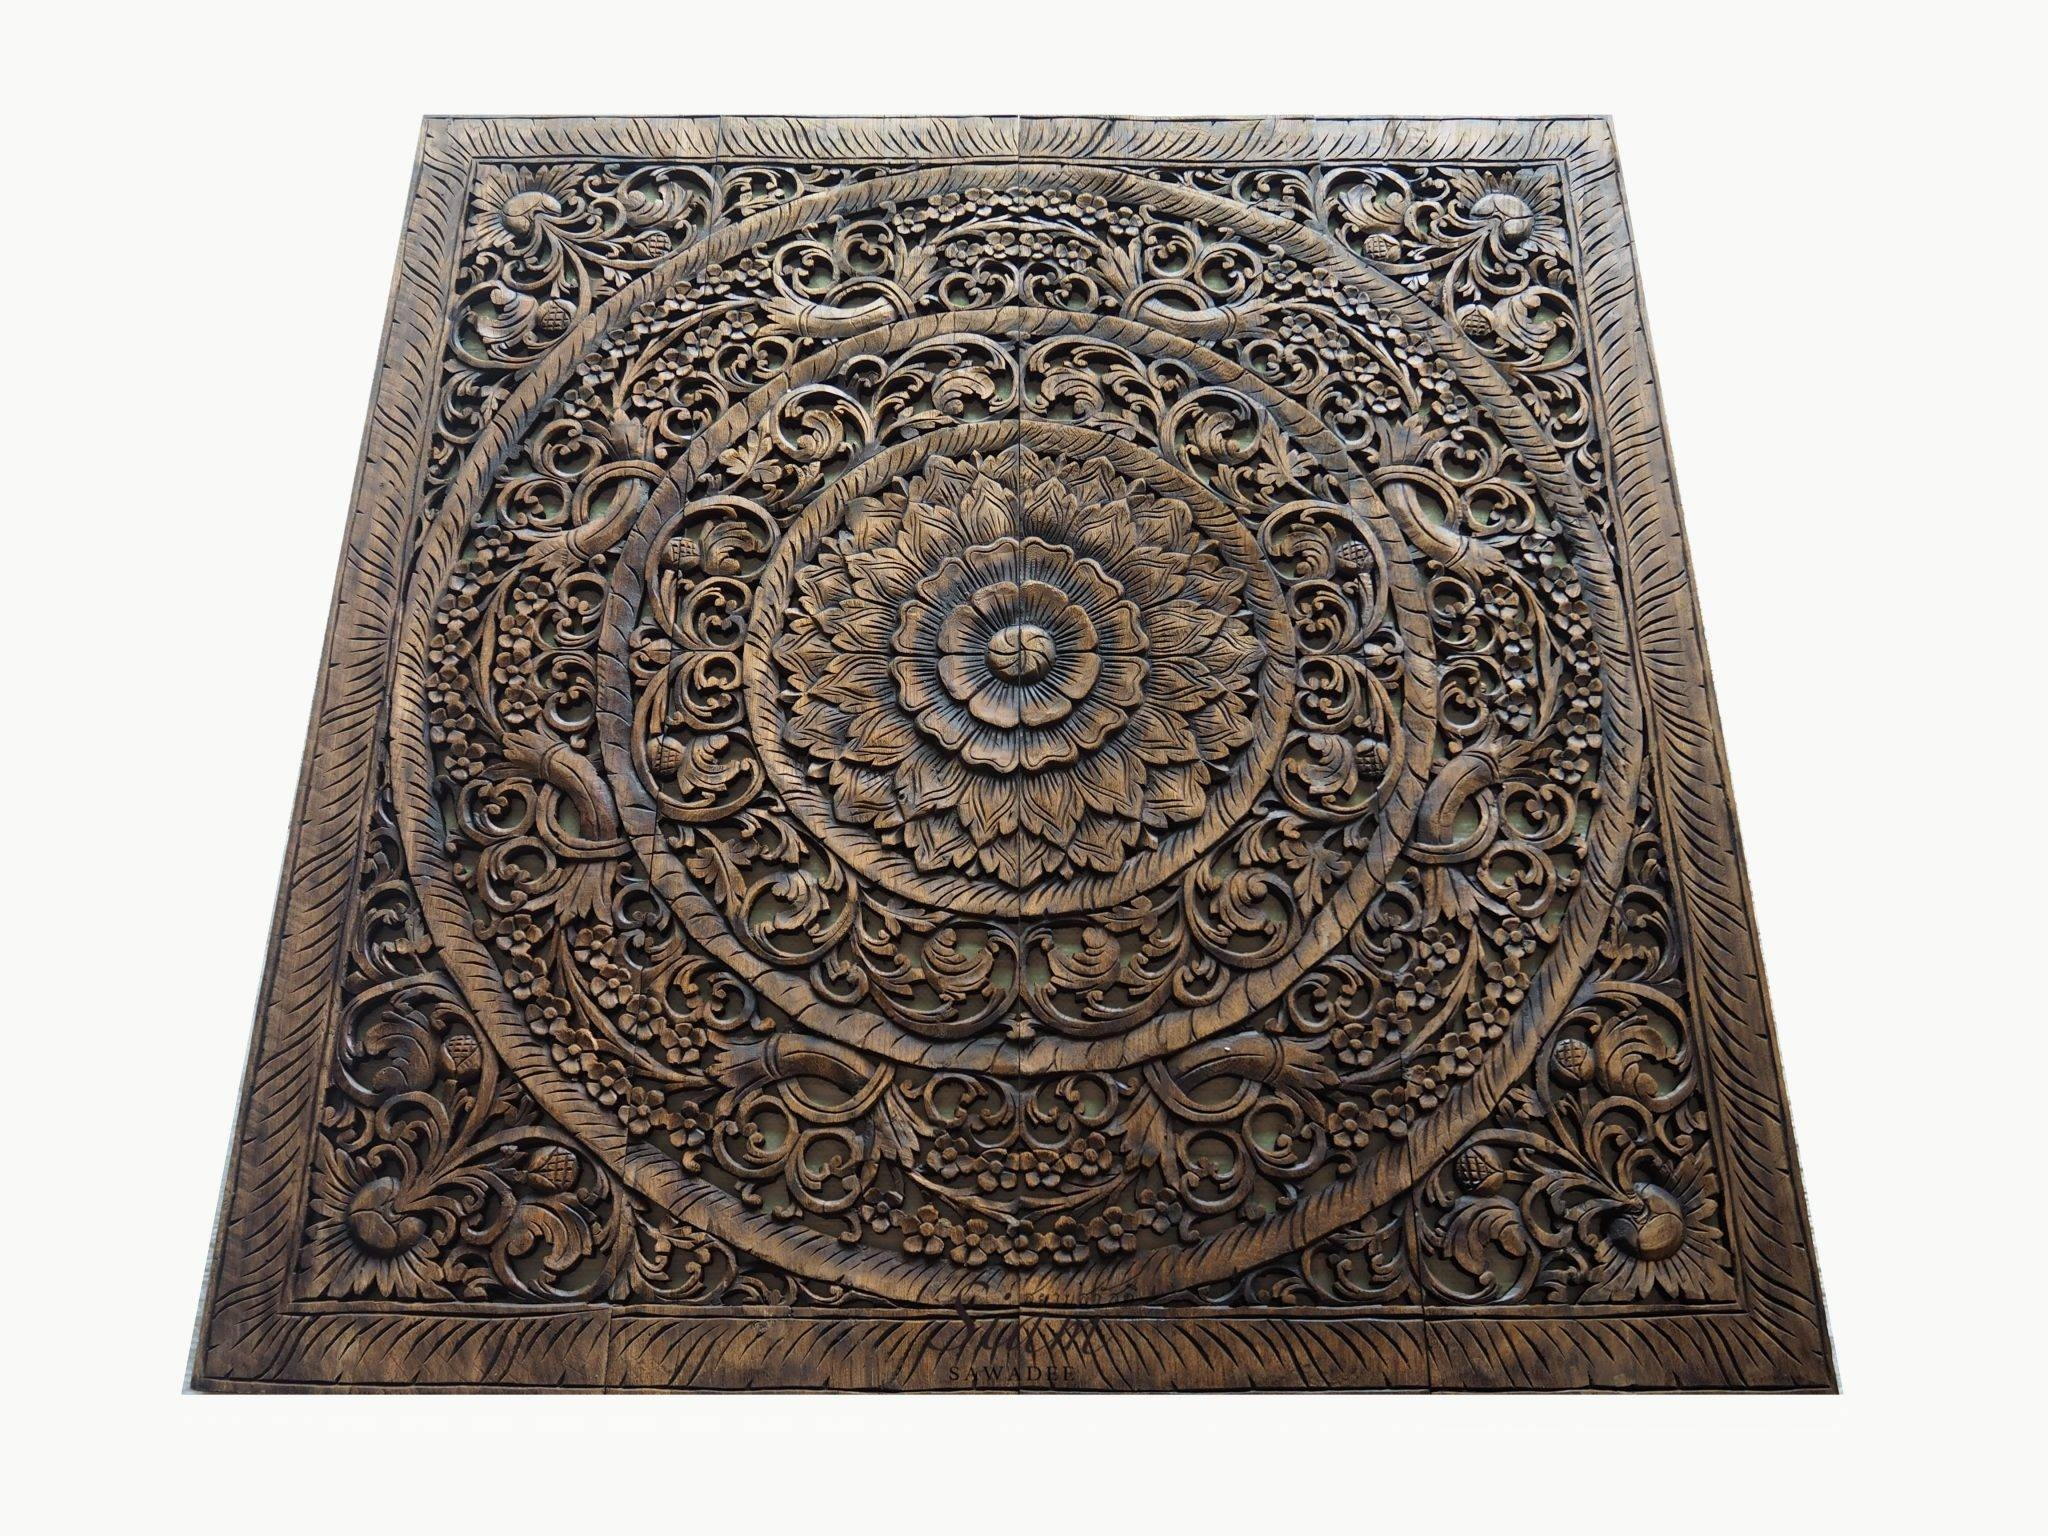 Grand Carved Teak Wood Wall Art Panel Plaque Decor – Siam Sawadee Pertaining To Current Wood Carved Wall Art Panels (View 11 of 25)